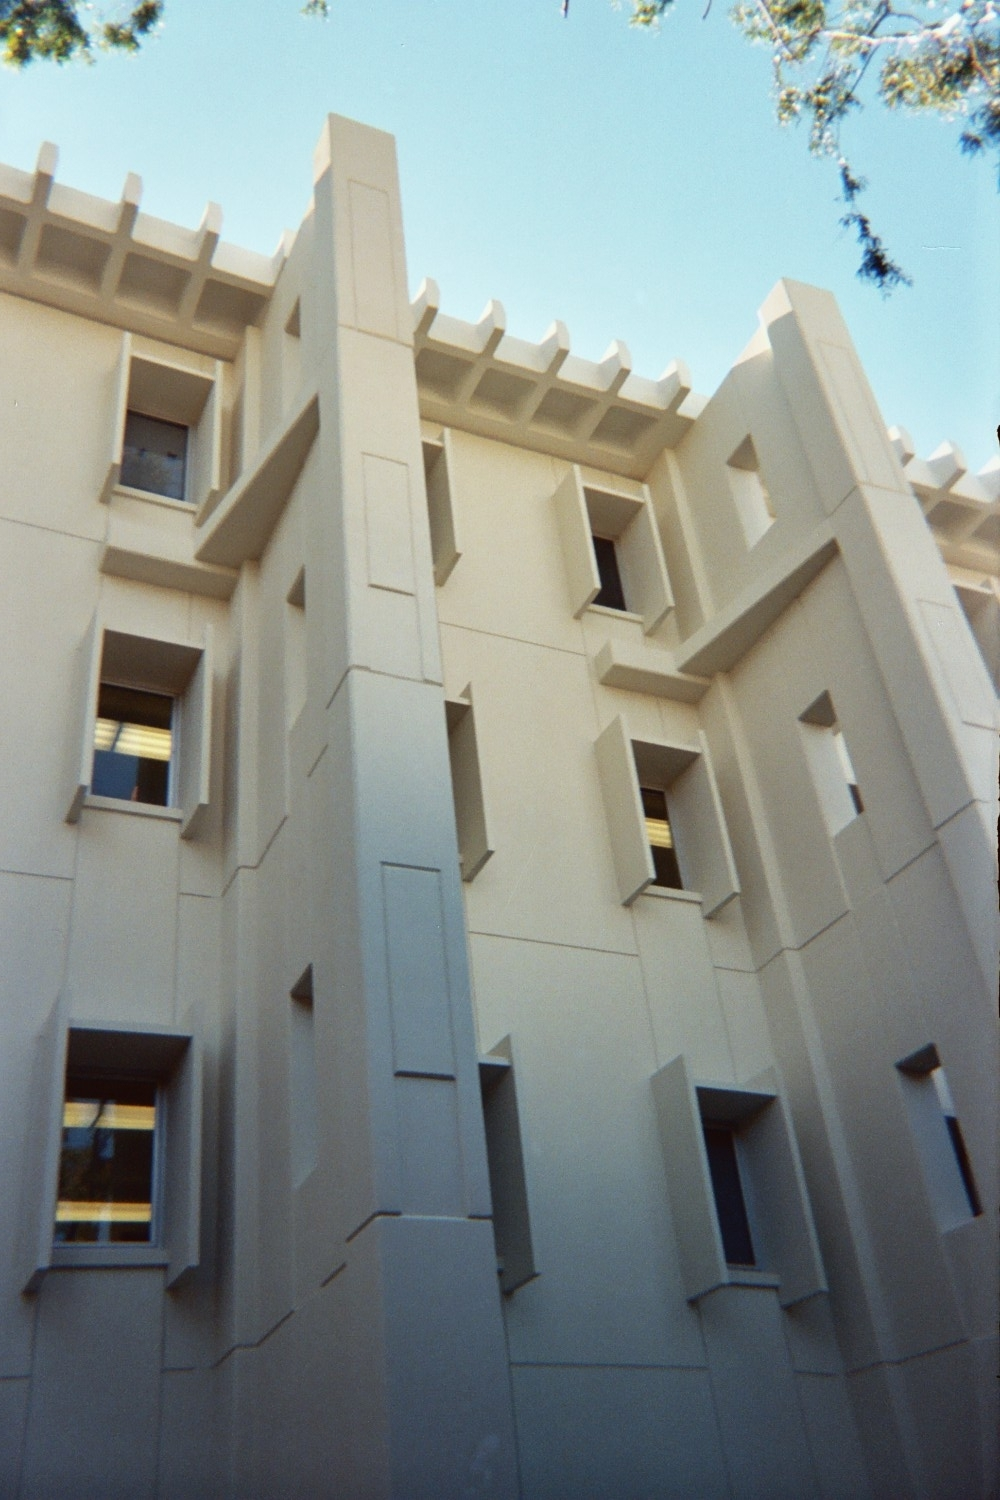 03.12.24-Building side upper.JPG